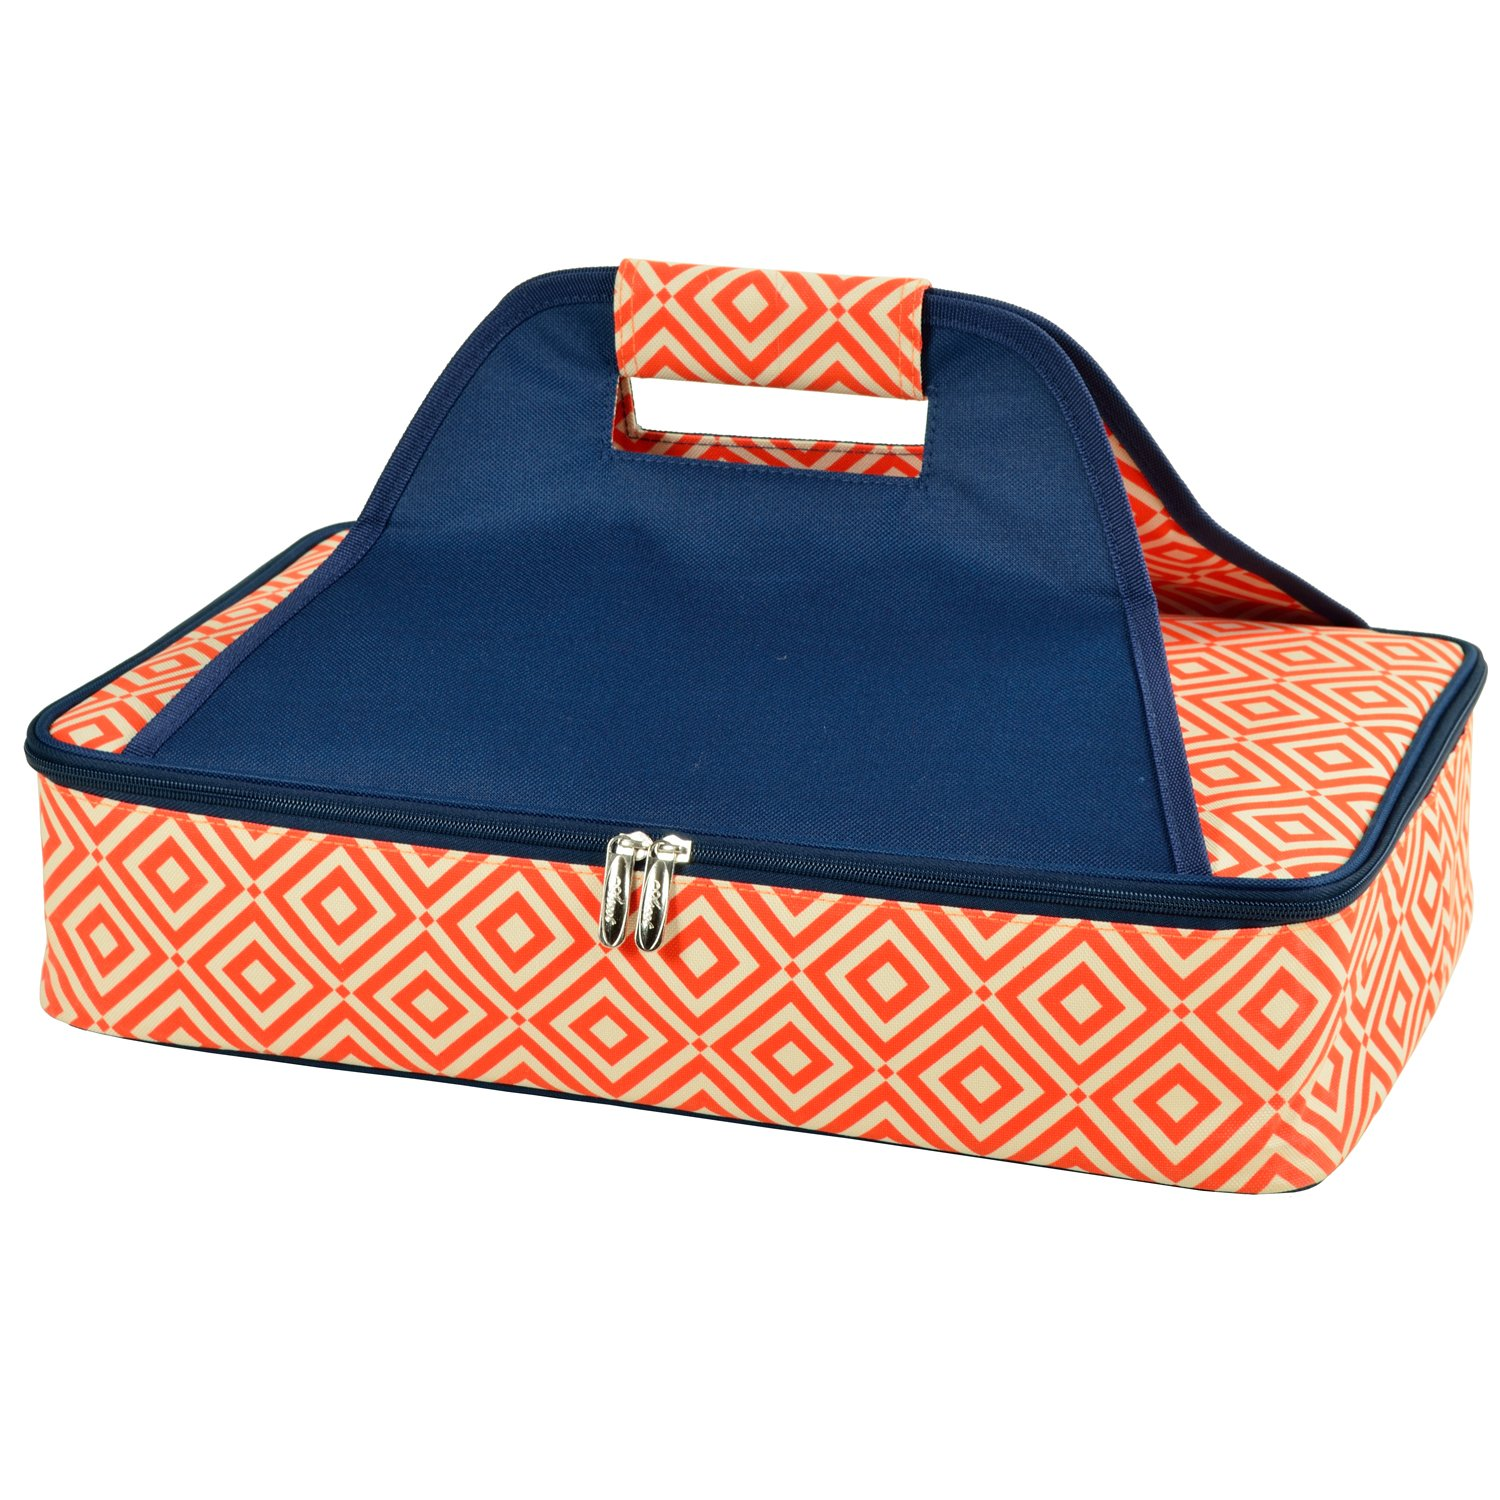 Picnic at Ascot Insulated Food Casserole Carrier to keep Food Insulated Hot or Cold- Orange Navy fca48f